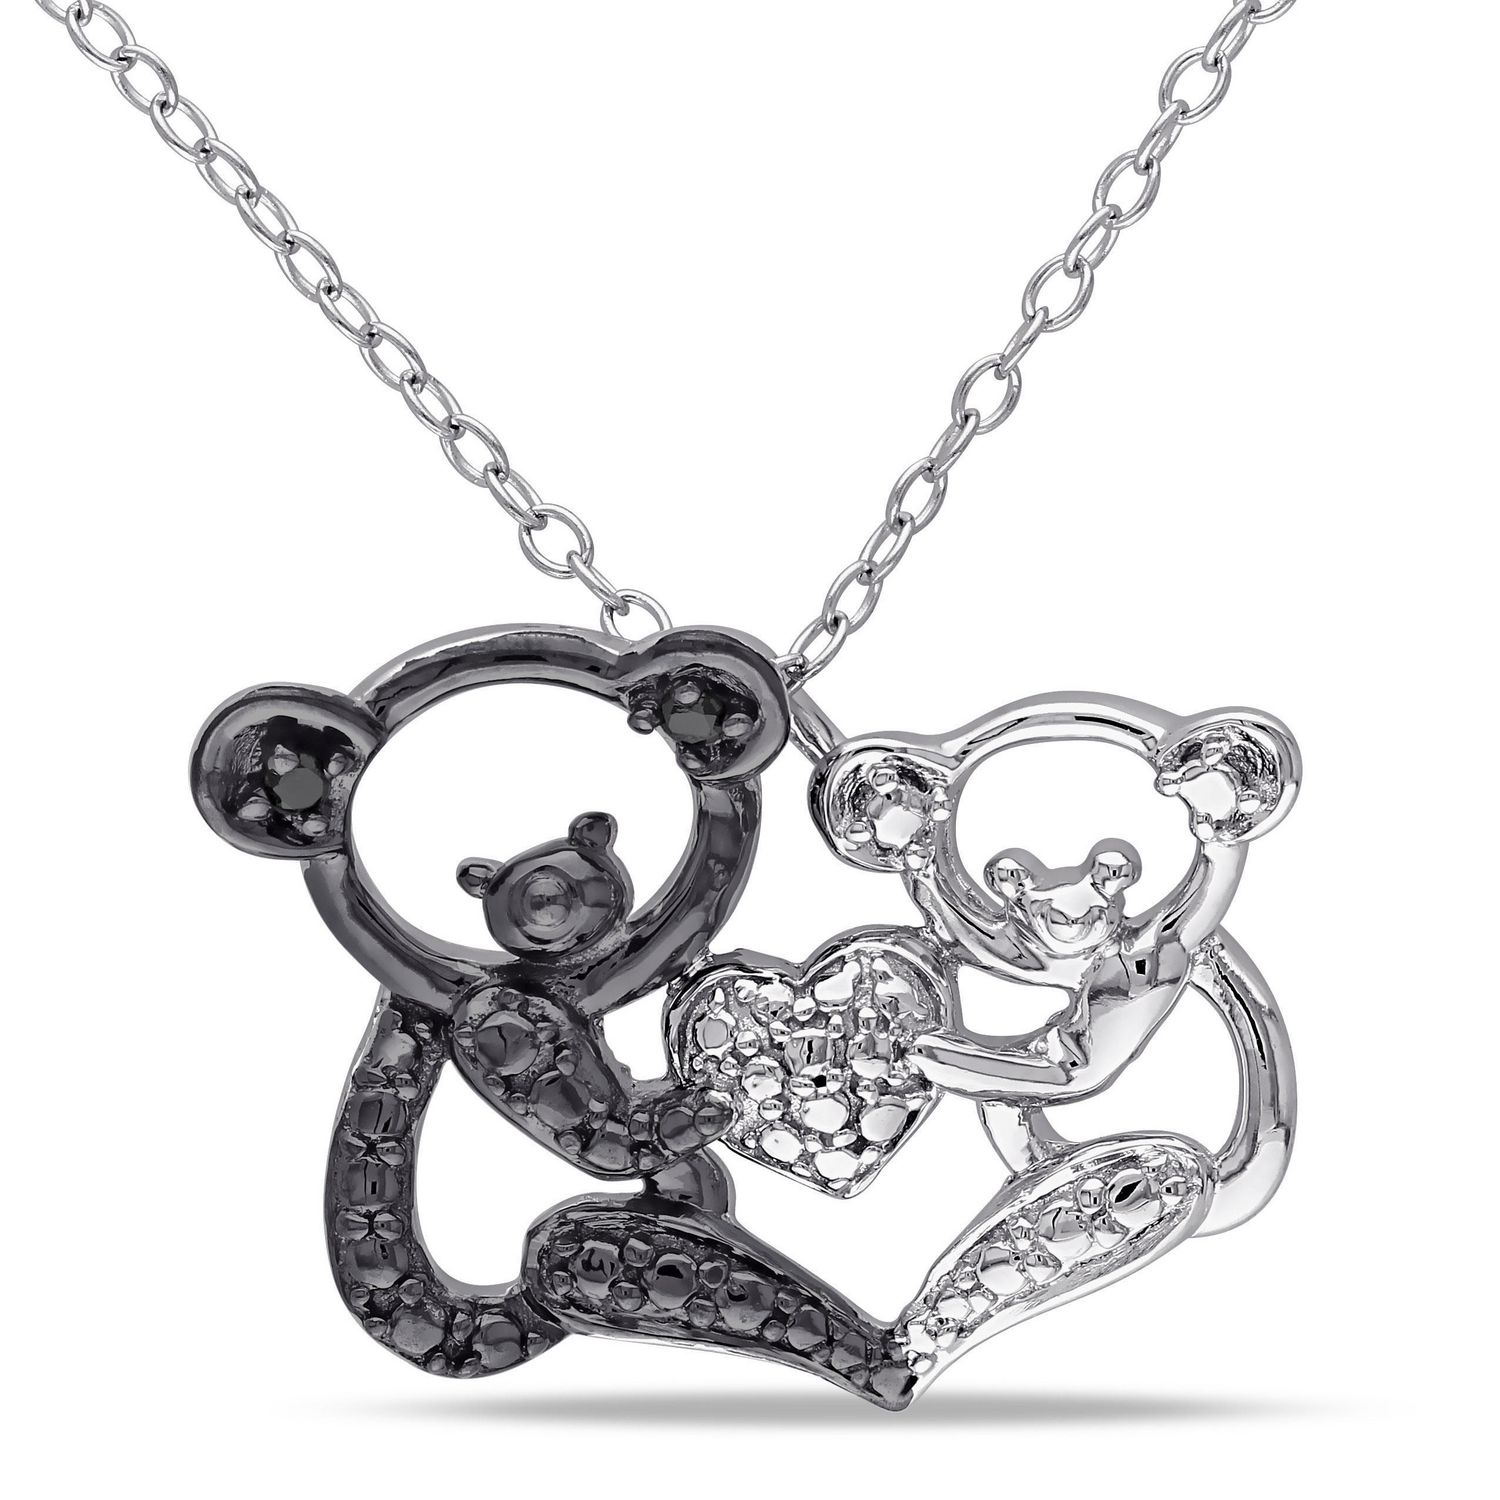 phantasya bear necklace pendant product necklaces teddy